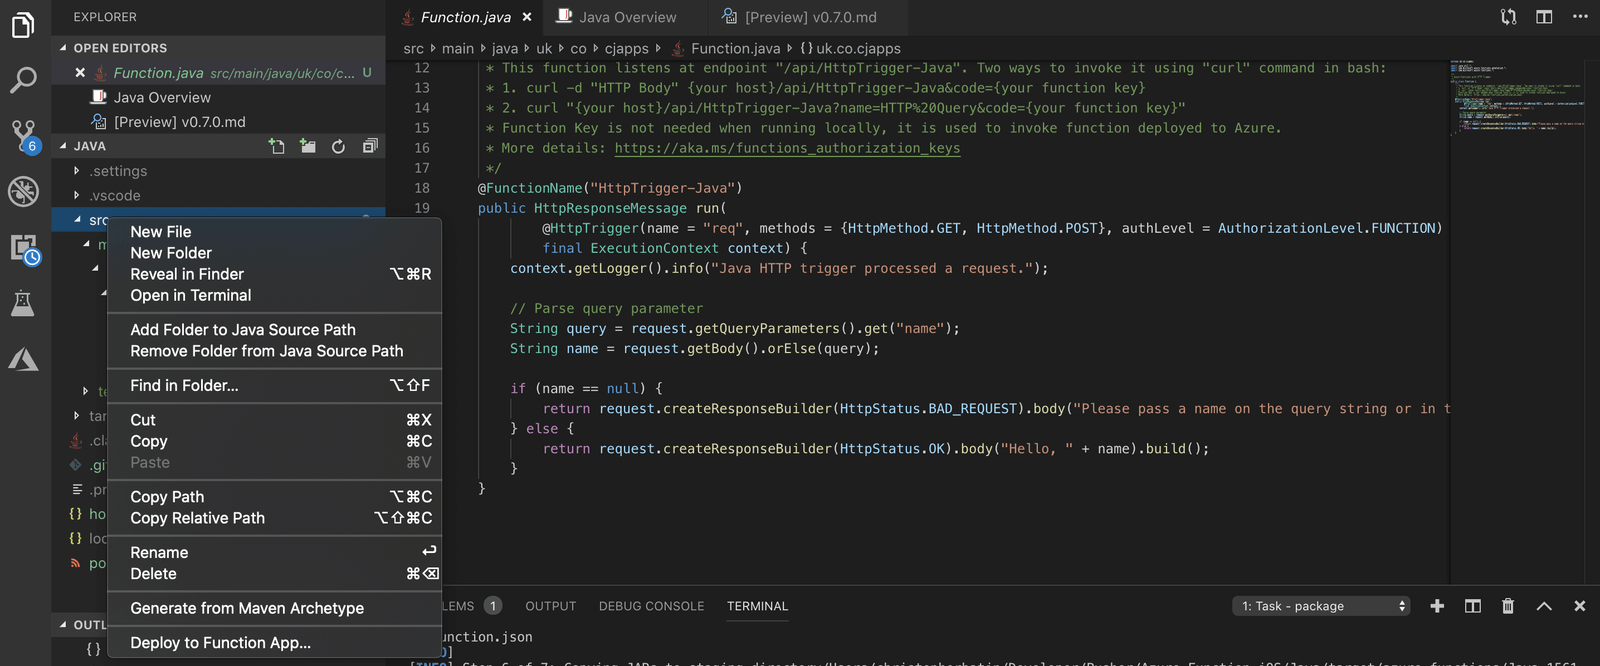 Azure function running Java for iOS notifications